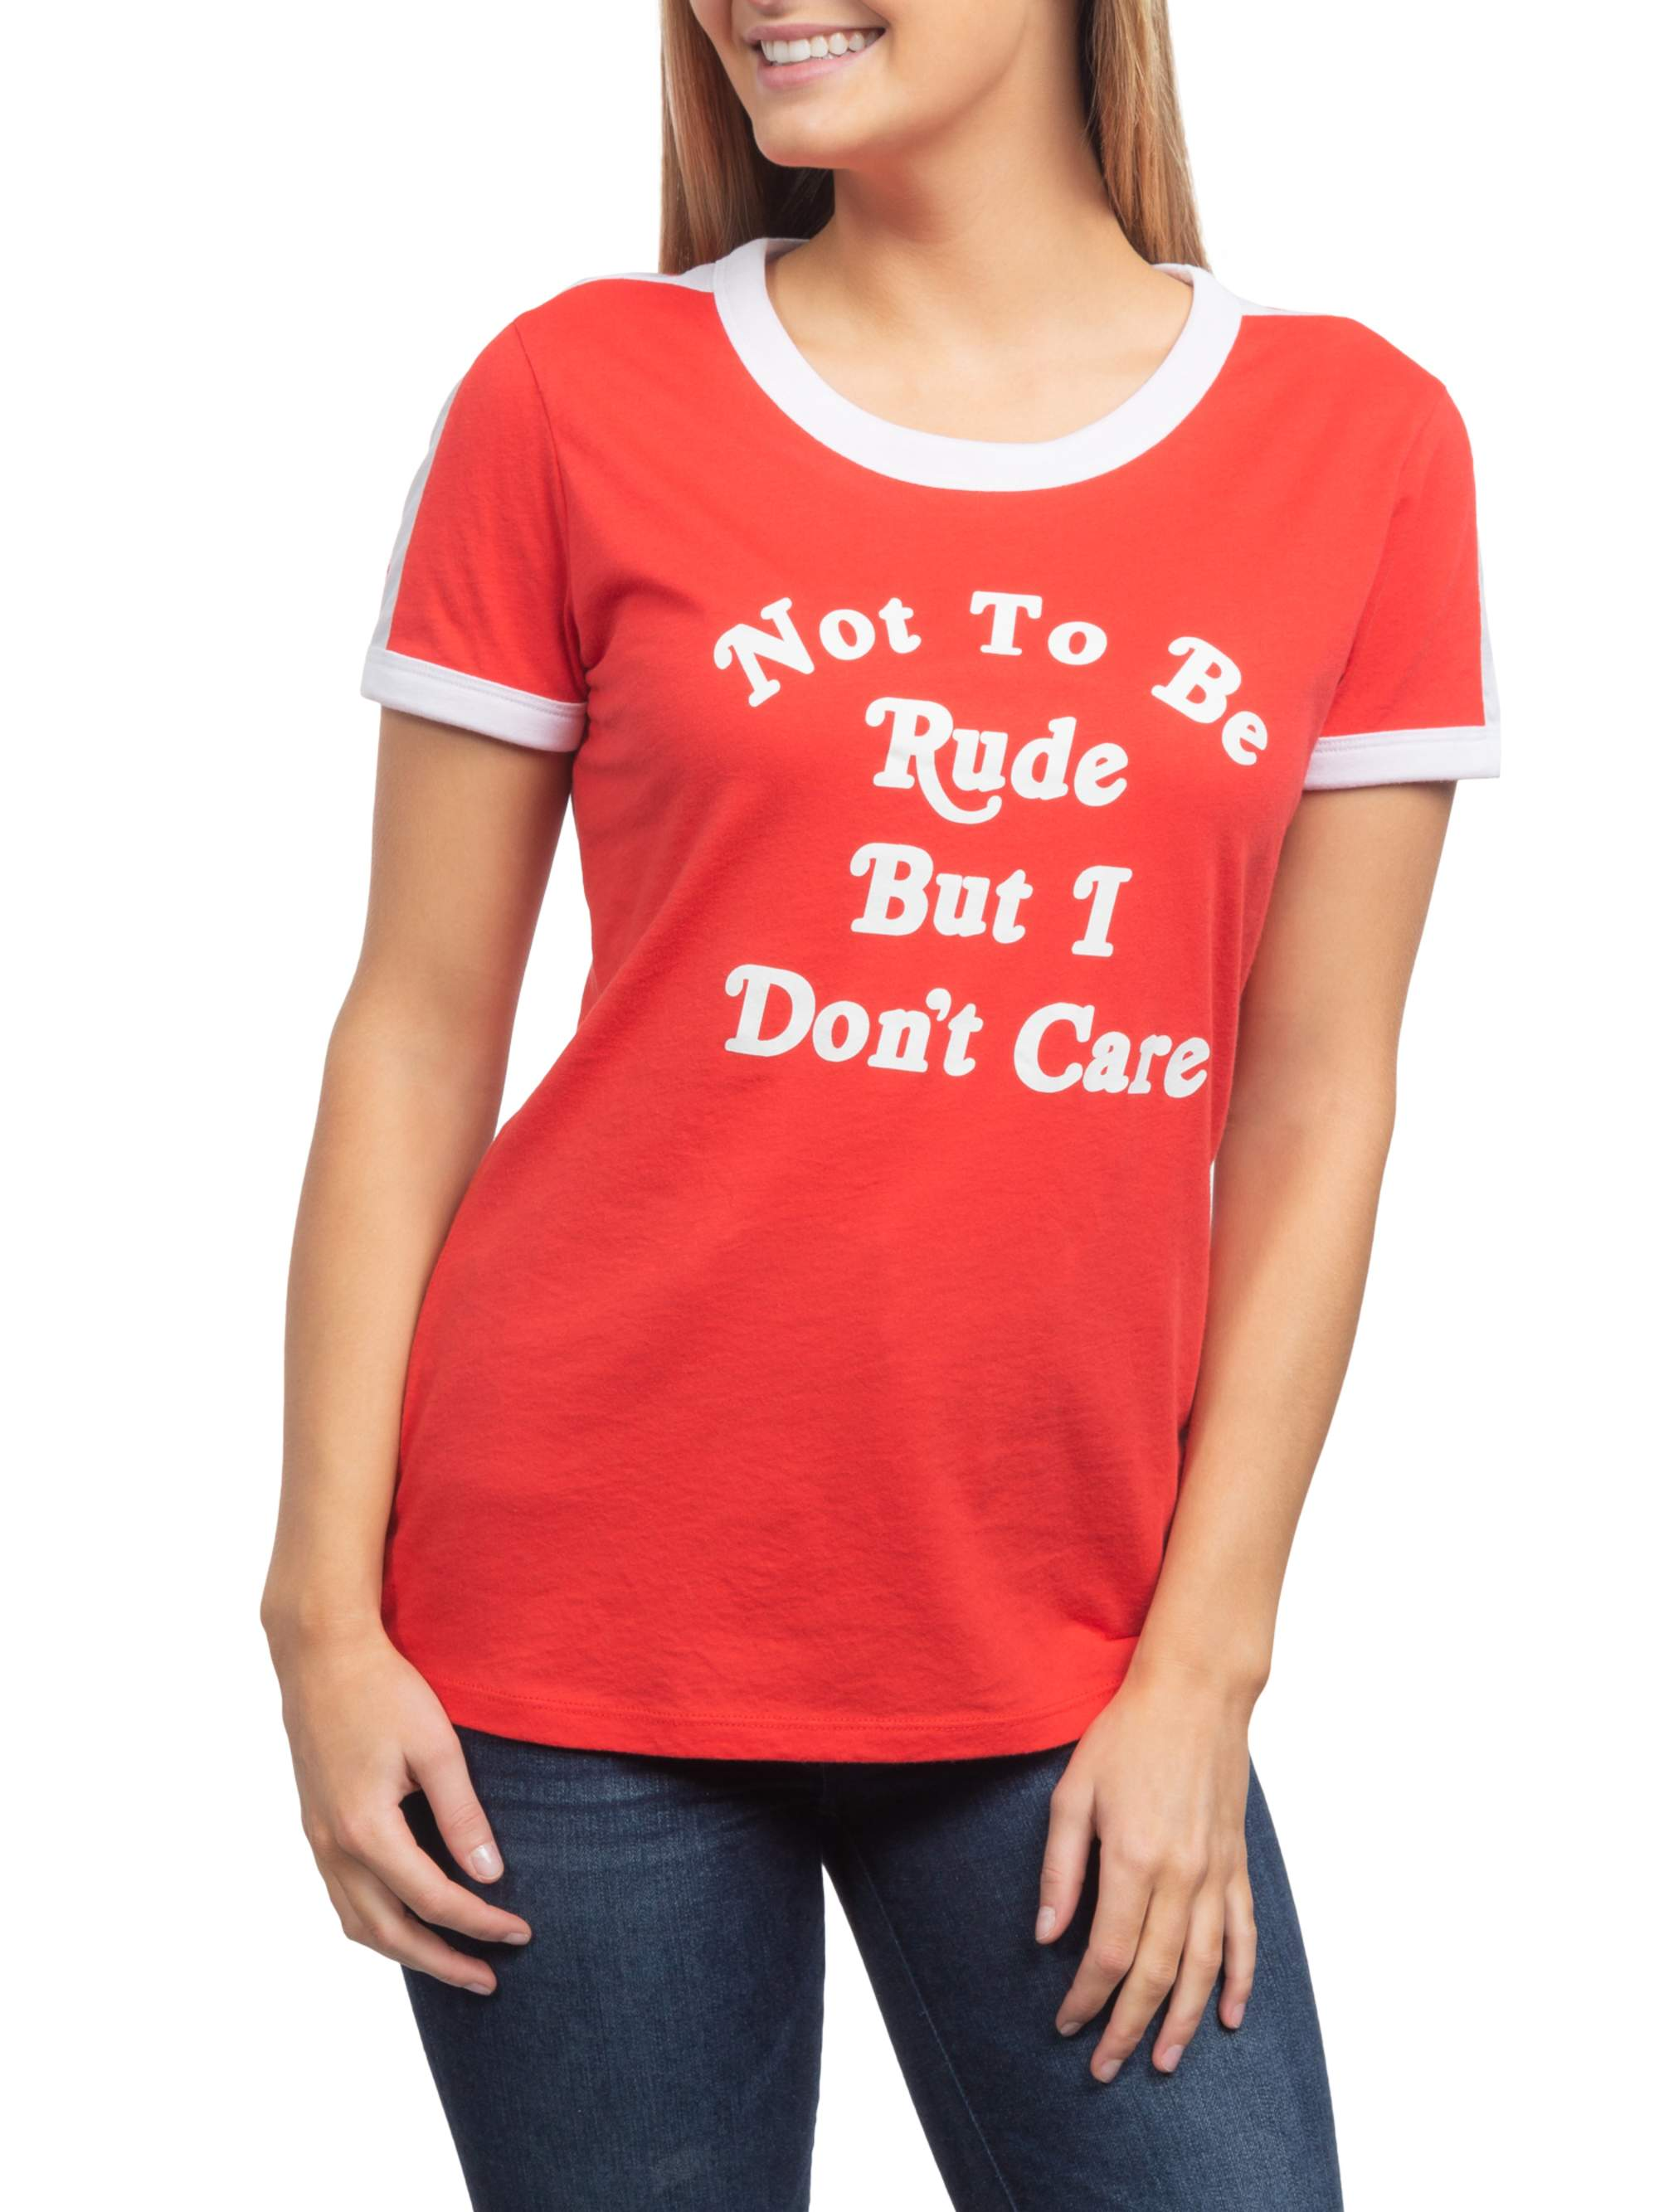 Not To Be Rude But Juniors' Generic Contrast Ringer Graphic Short Sleeve T-Shirt